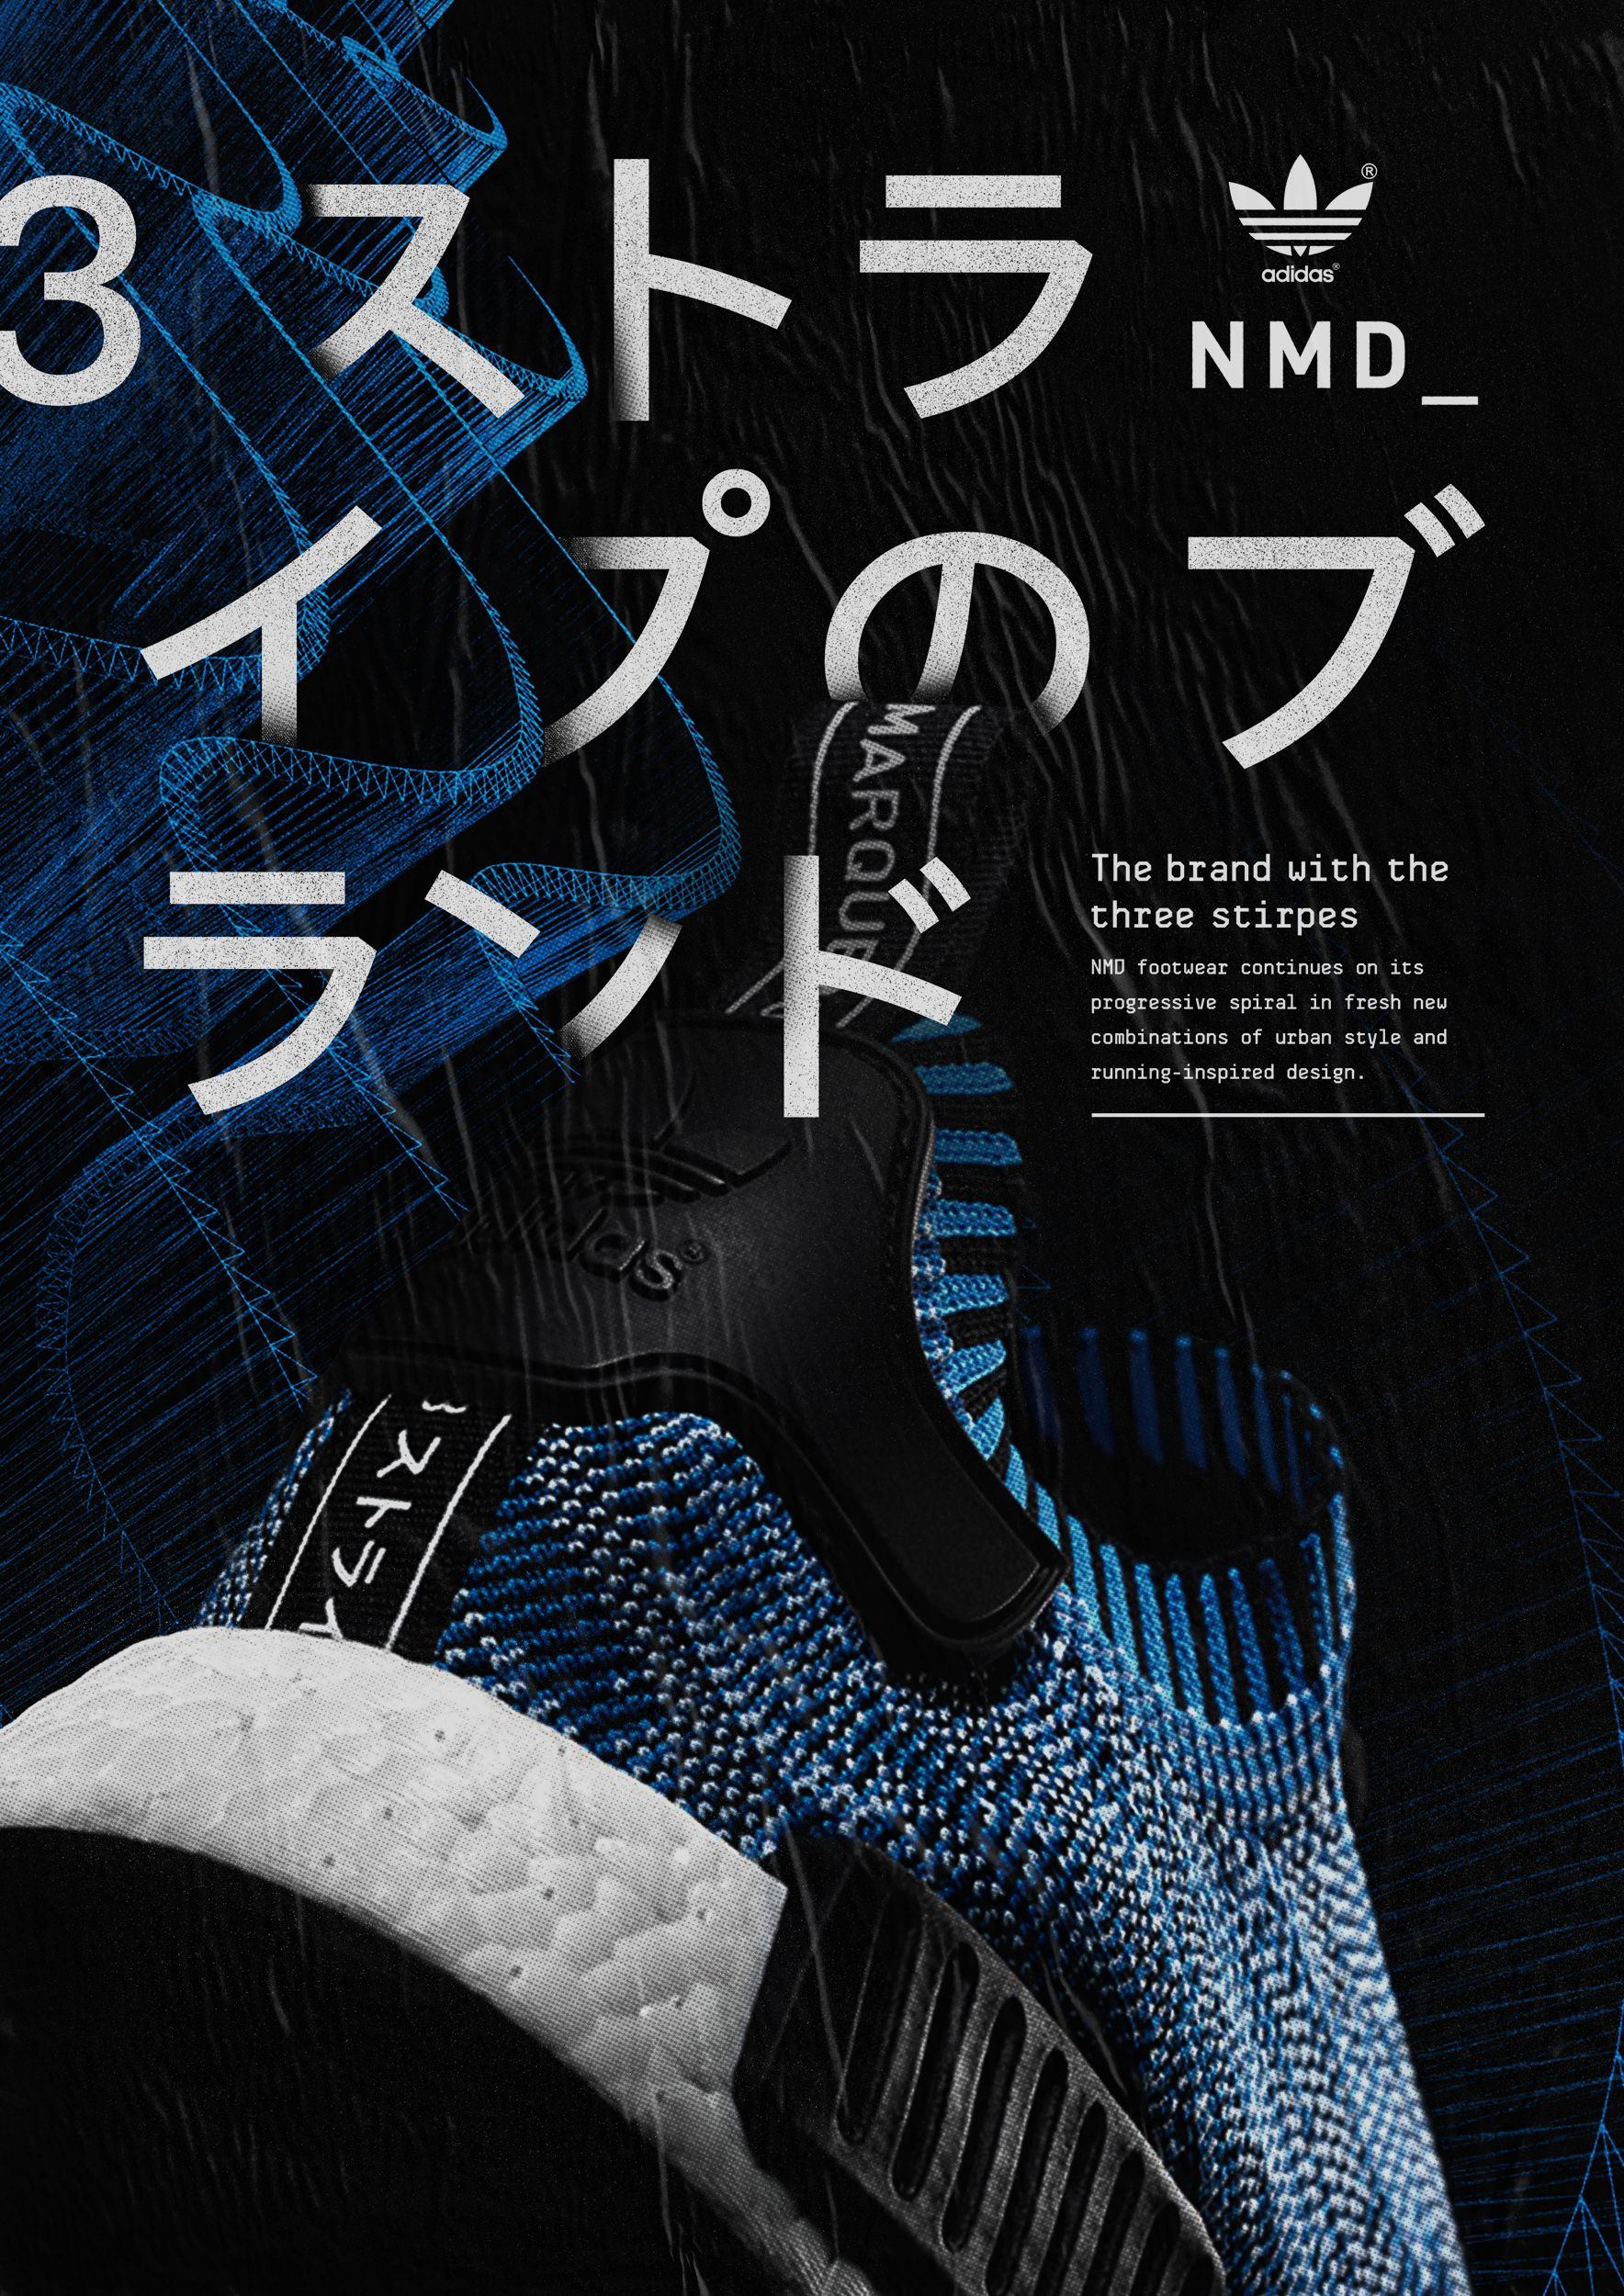 Poster 2 | Design & Layout | Adidas nmd, Graphic design